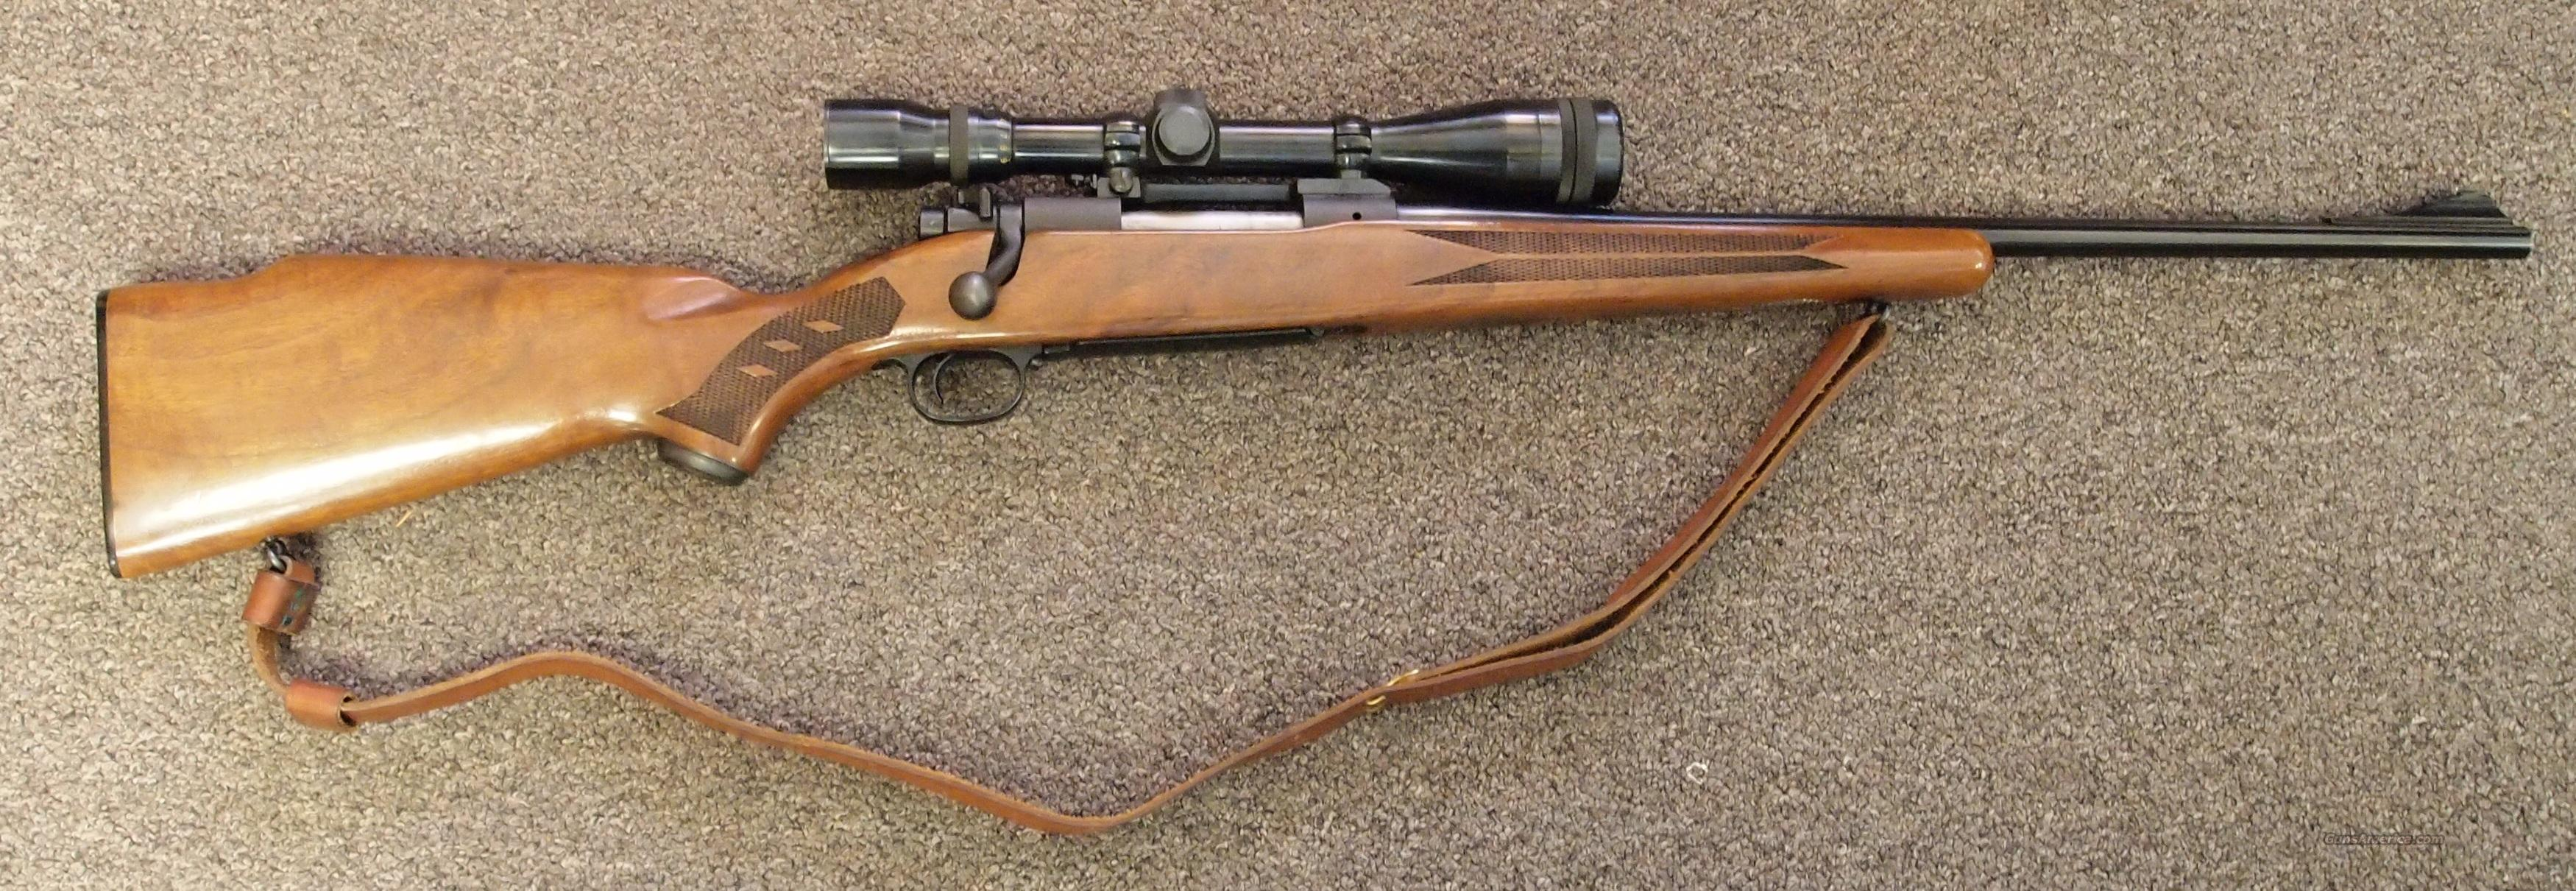 WINCHESTER MOD 70 243 WIN  Guns > Rifles > Winchester Rifles - Modern Bolt/Auto/Single > Model 70 > Post-64